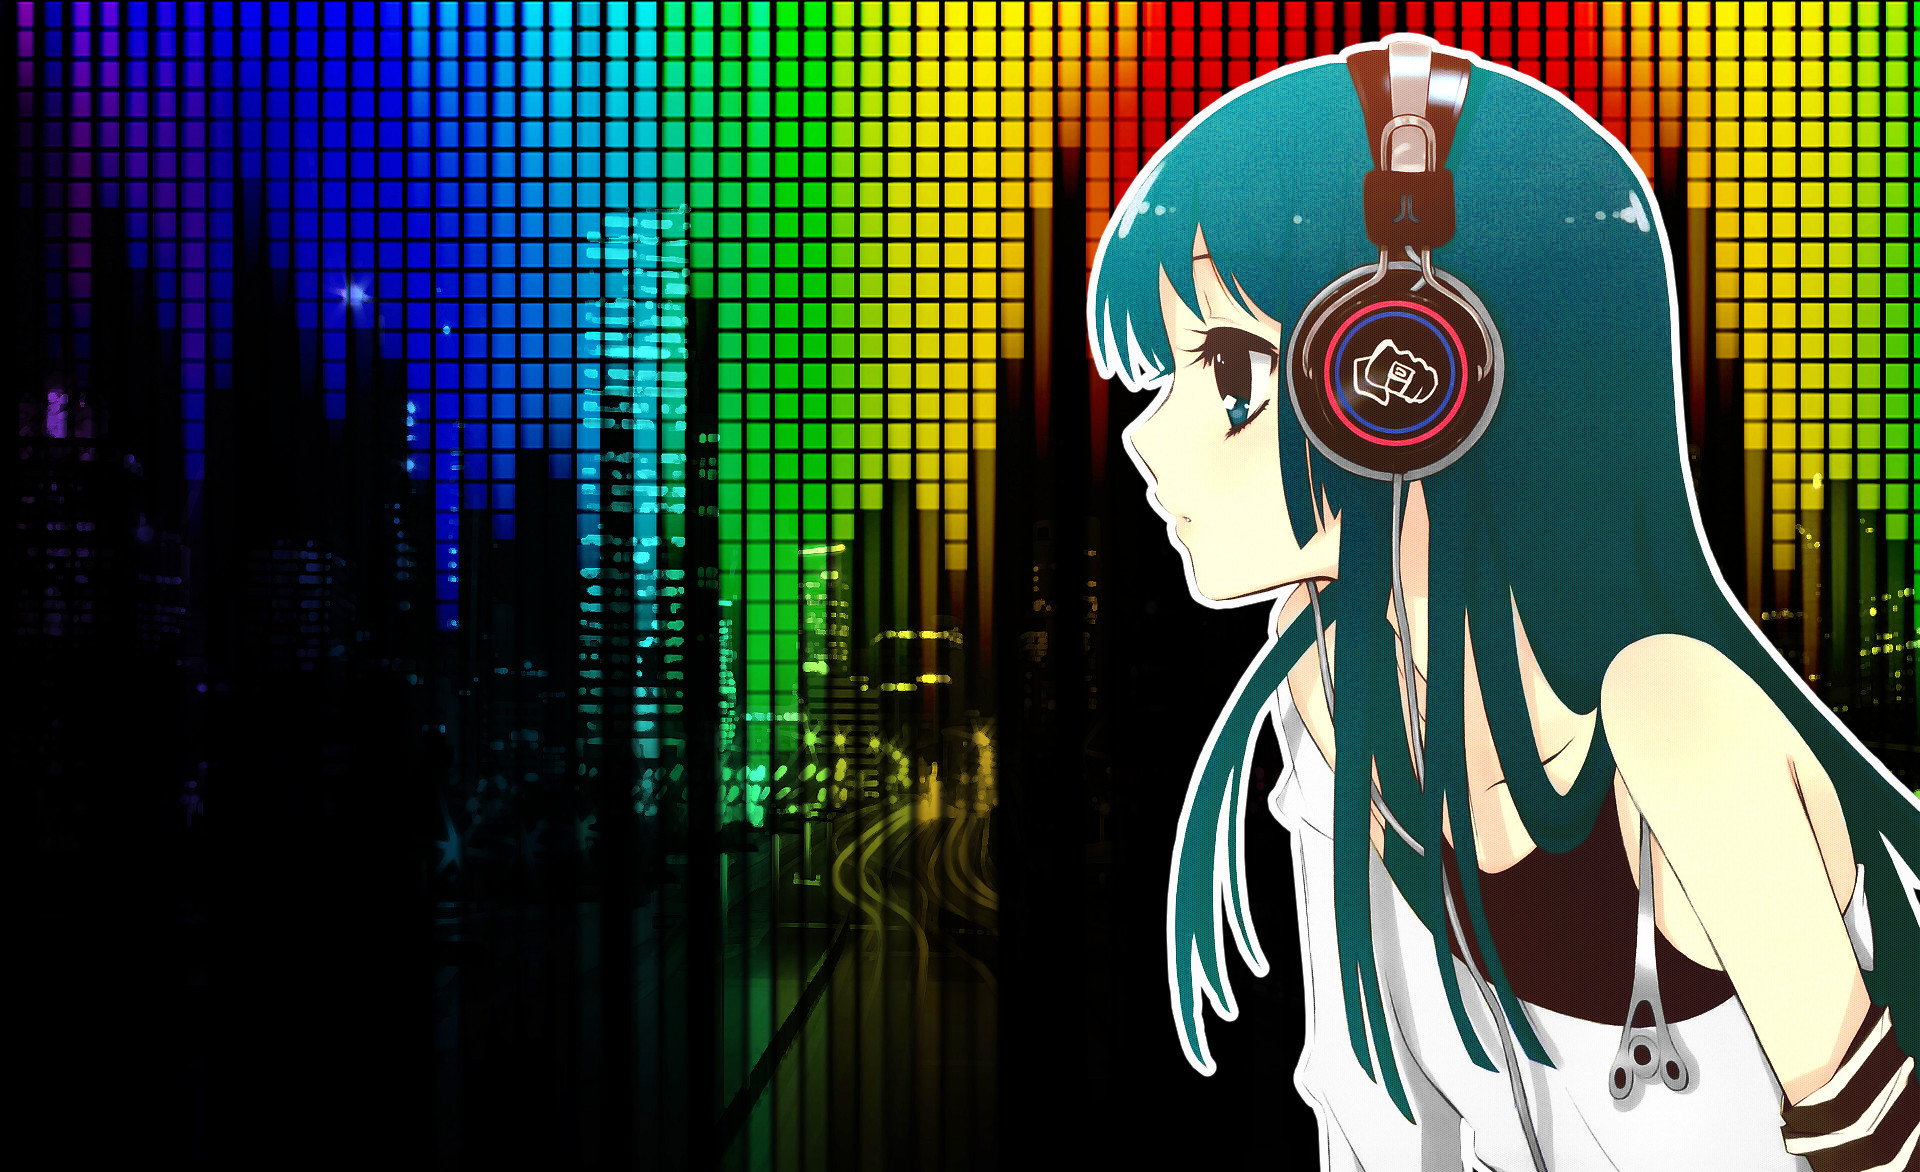 Res: 1920x1172, Anime music Wallpaper by Mrlolwoop Anime music Wallpaper by Mrlolwoop